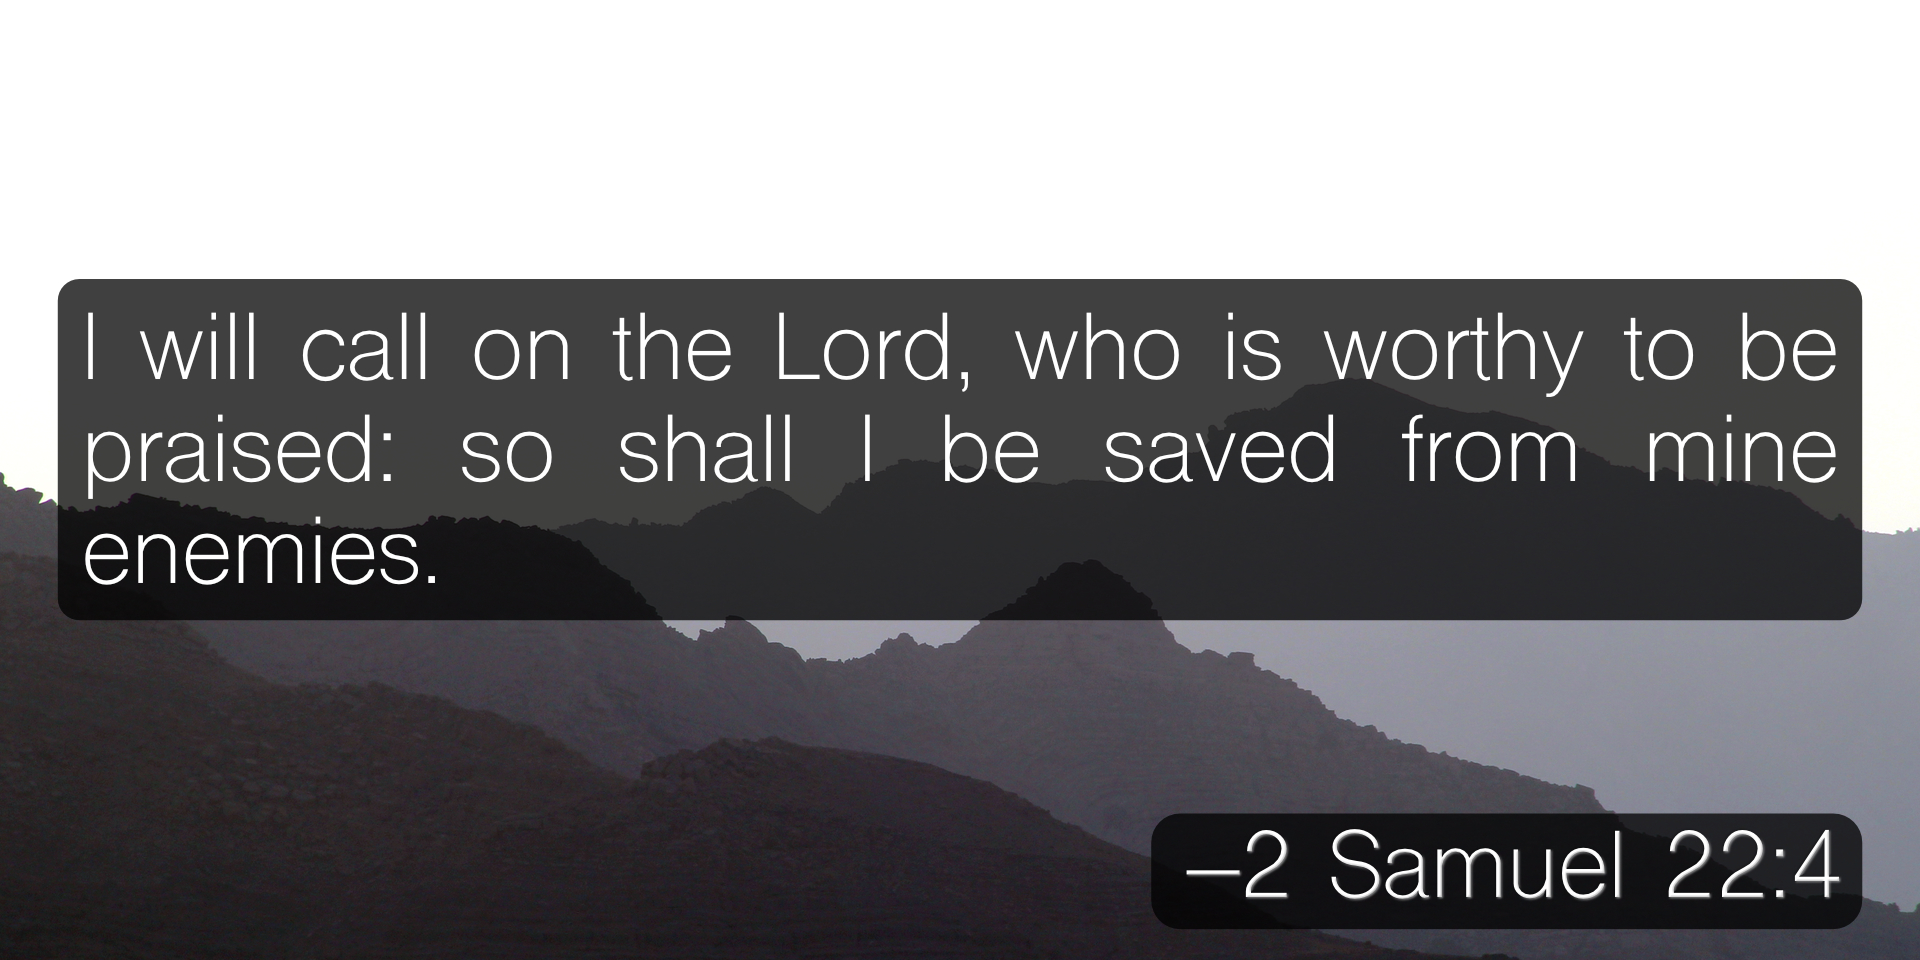 I will call on the Lord, who is worthy to be praised: so shall I be saved from mine enemies. –2 Samuel 22:4